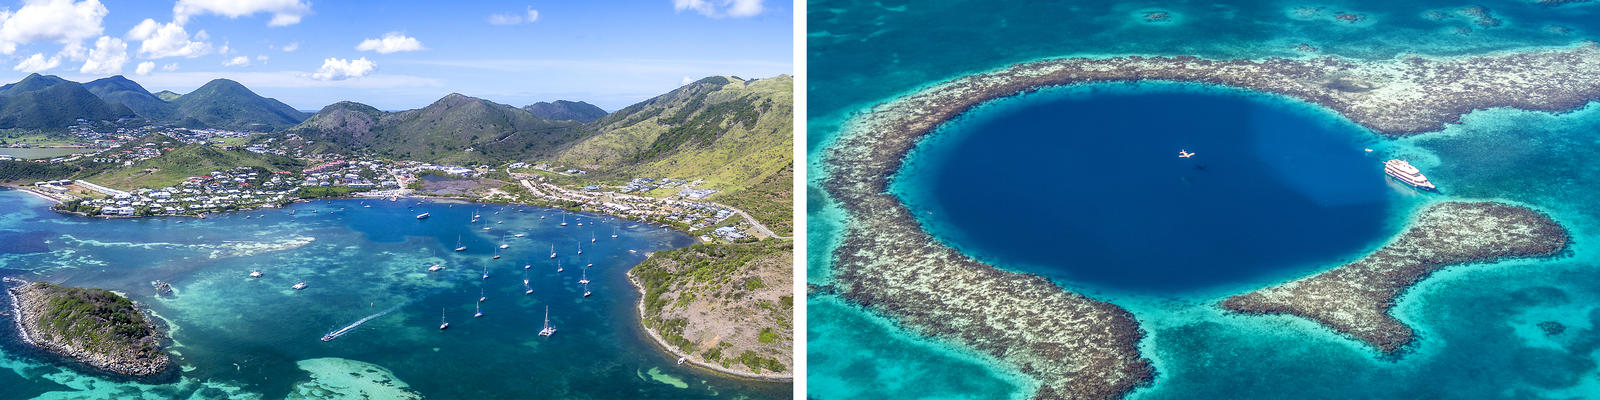 St. Martin Beach and The Great Blue Hole in Belize (Photo: thierry dehove & Globe Guide Media Inc/Shutterstock)